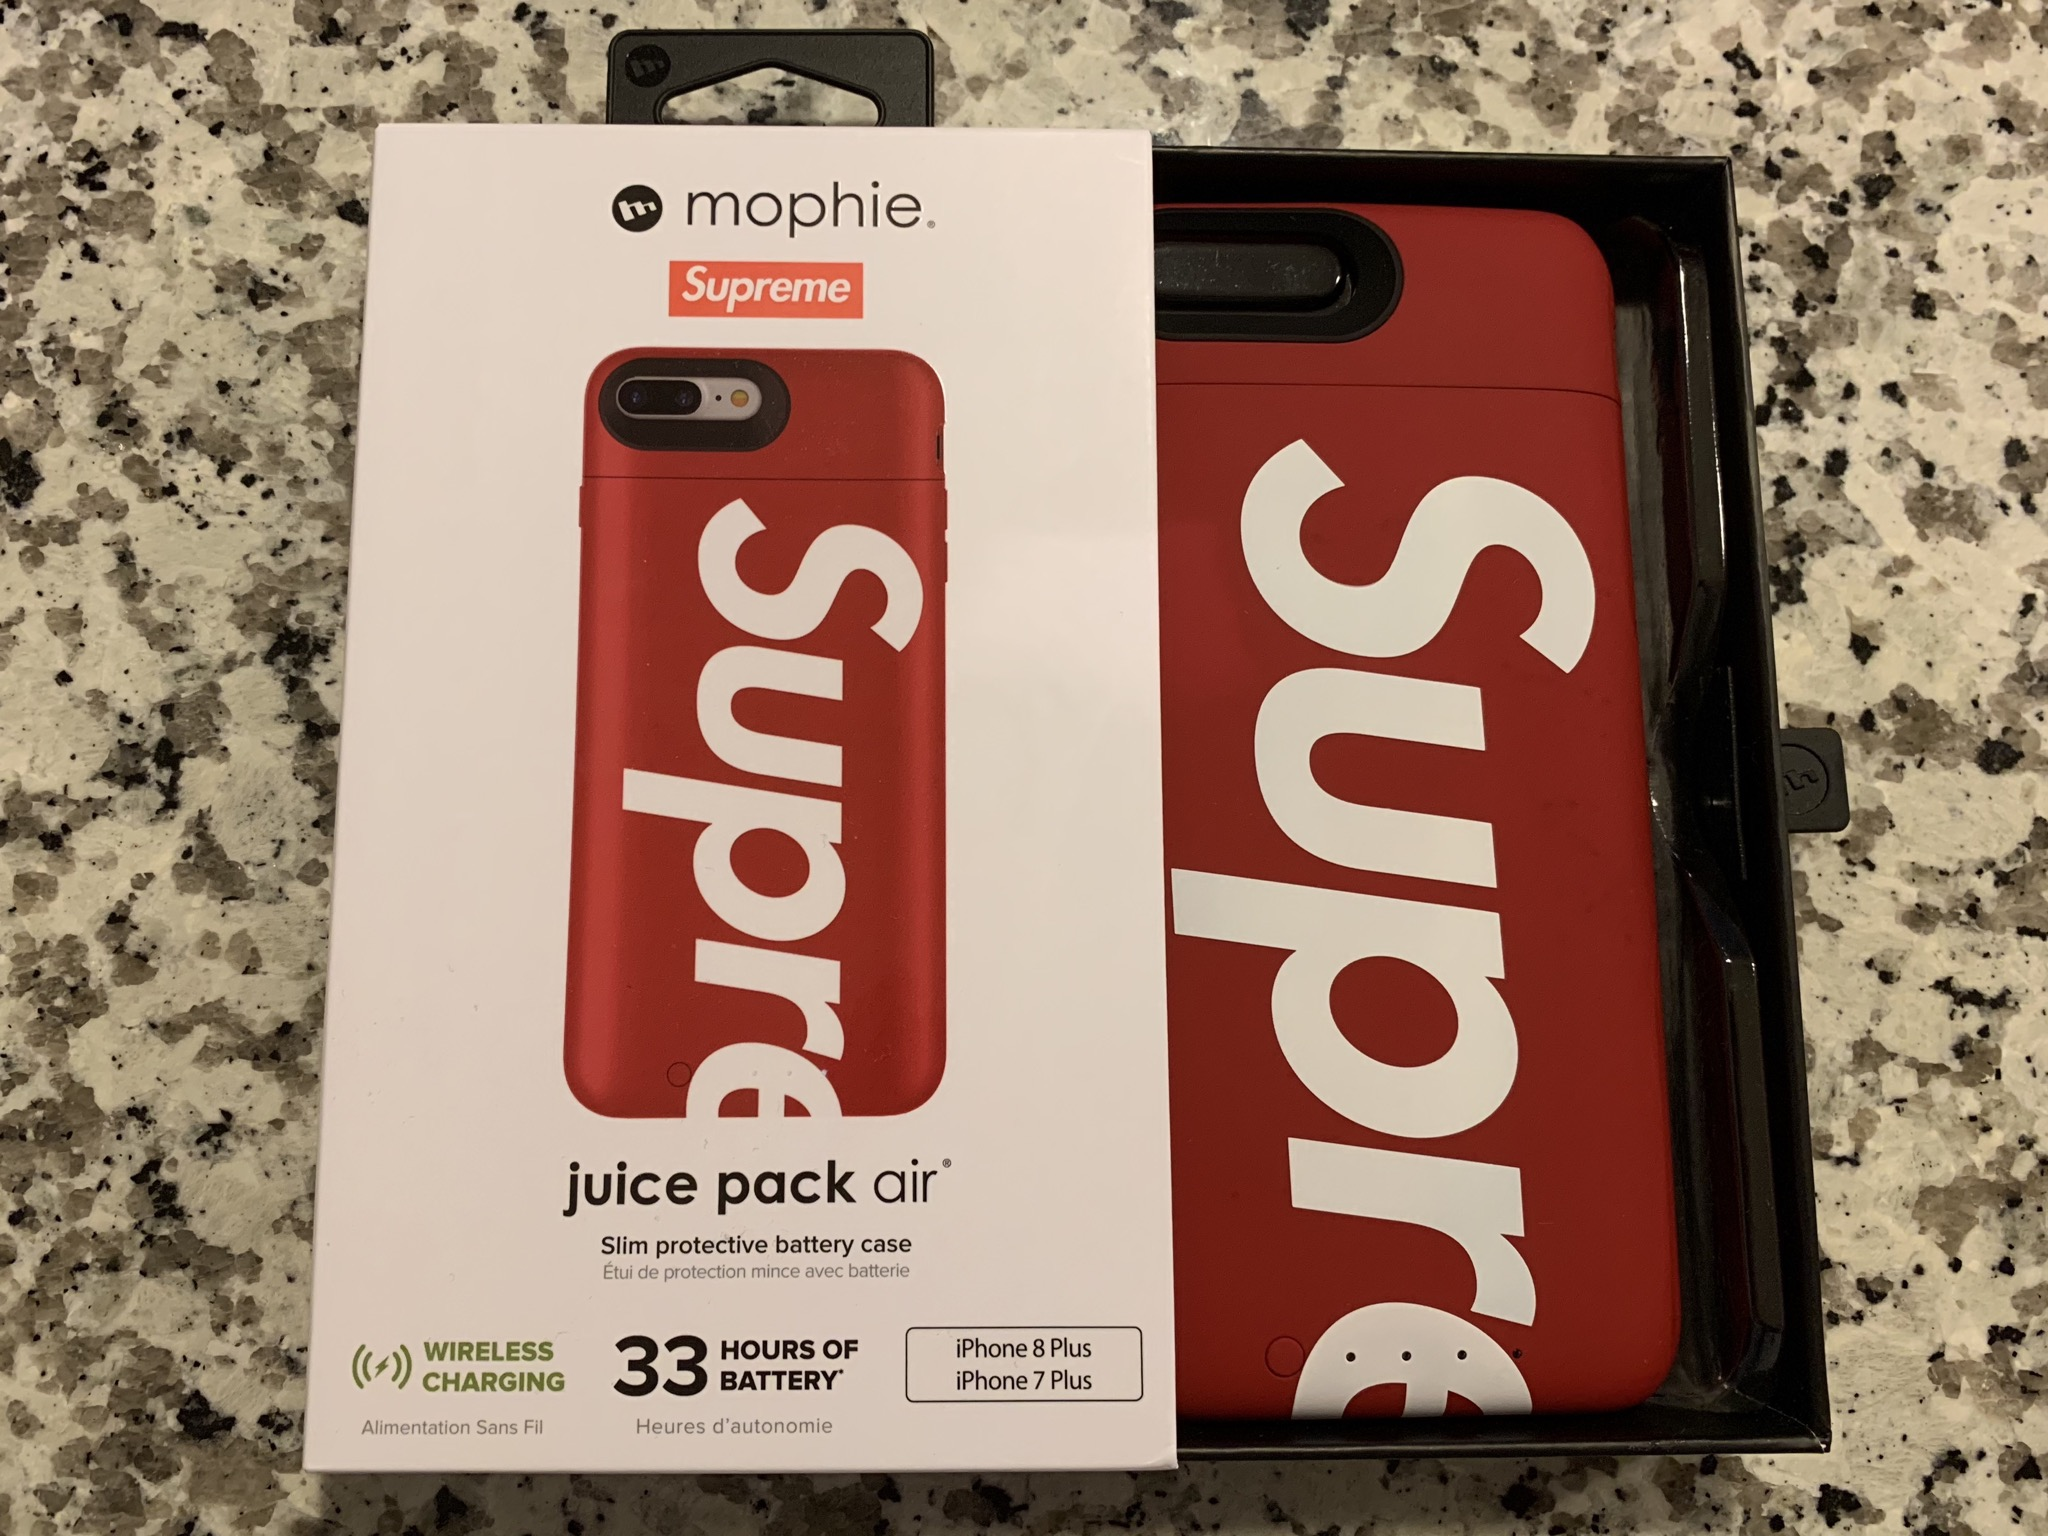 supreme supreme mophie red iphone 8 plus case size one sizesupreme supreme mophie red iphone 8 plus case size one size supreme for sale grailed